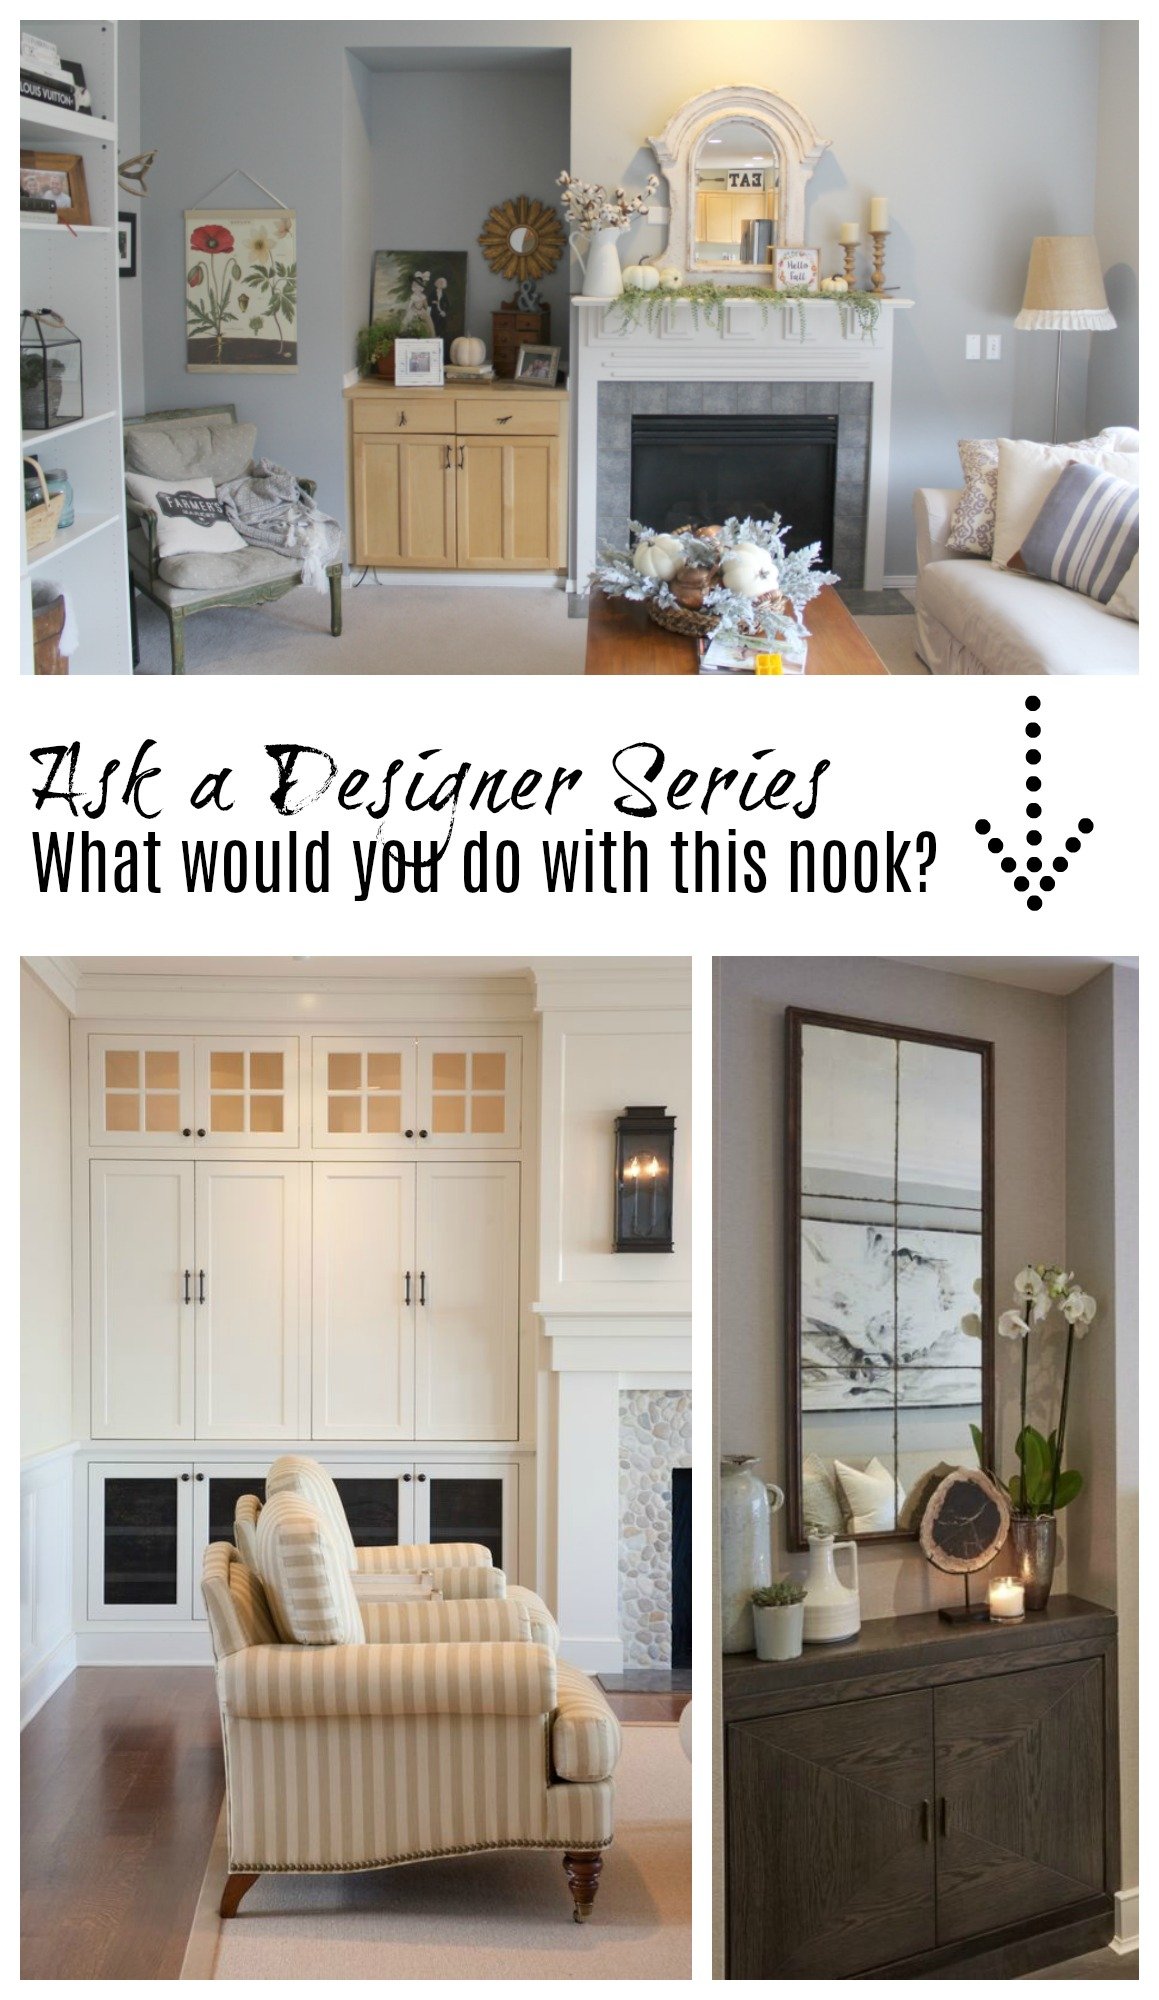 Ask A Designer Series What Would You Suggest For This Nook